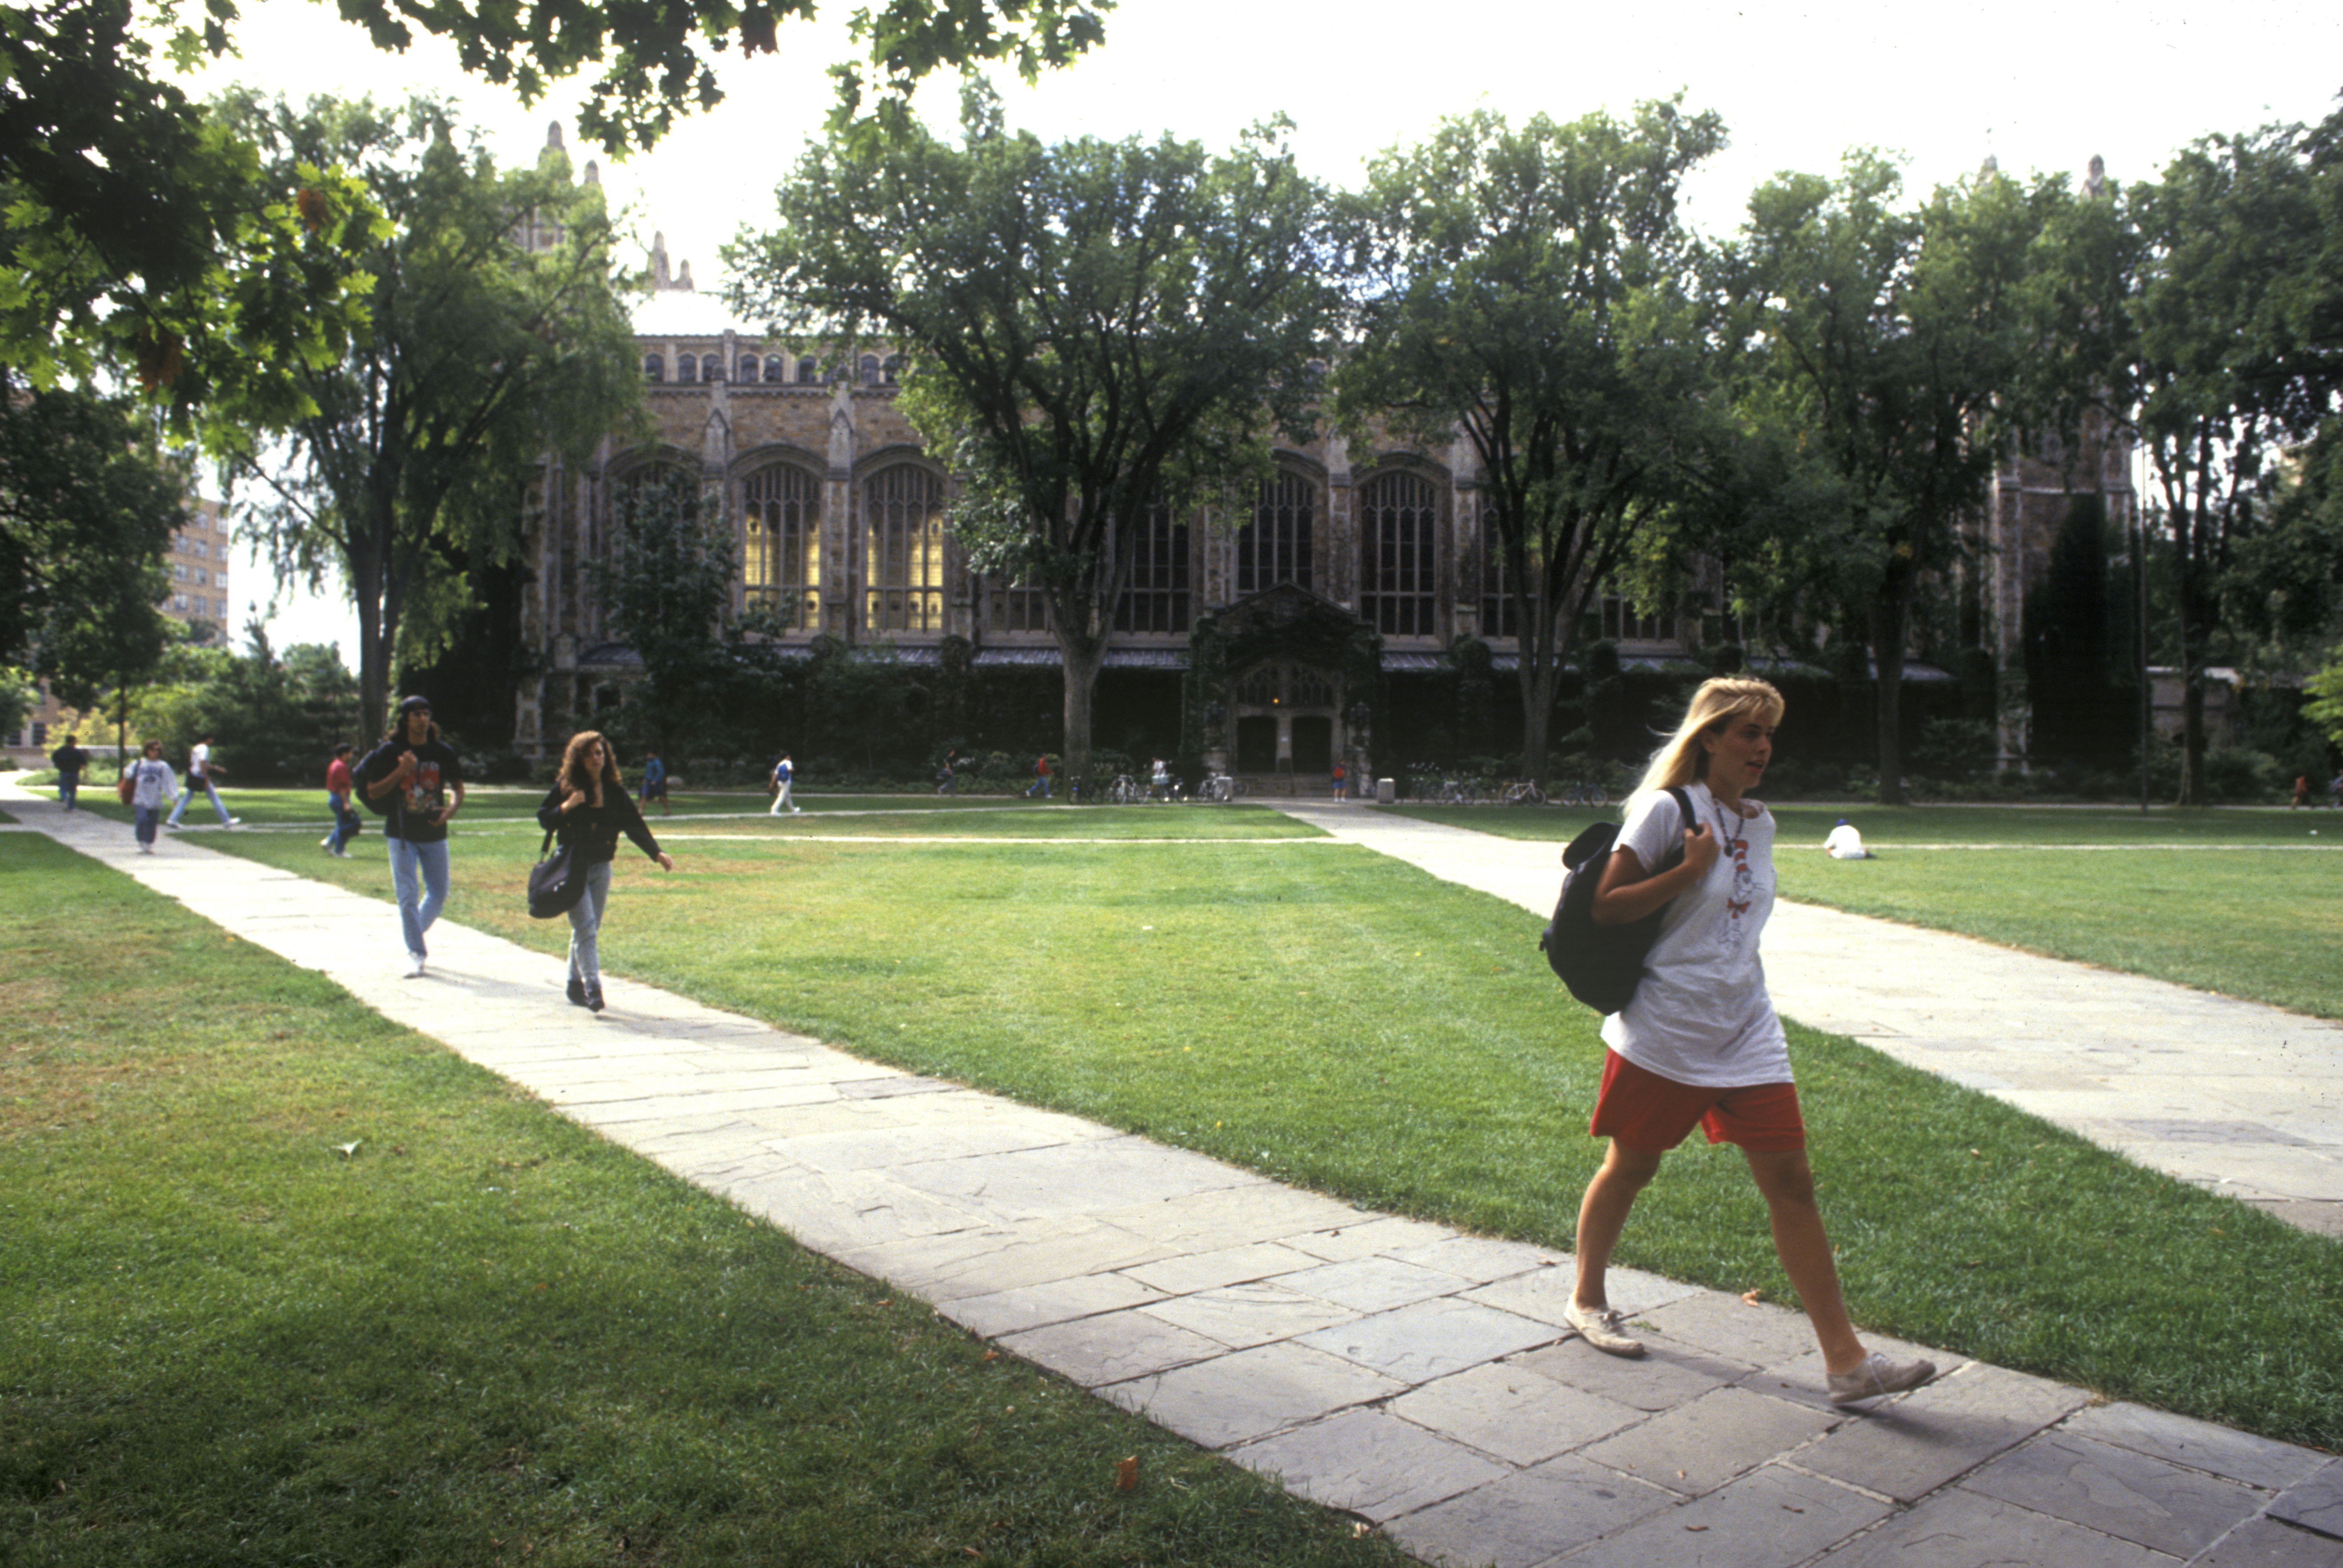 Law Quadrangle, University of Michigan, c.1990s image